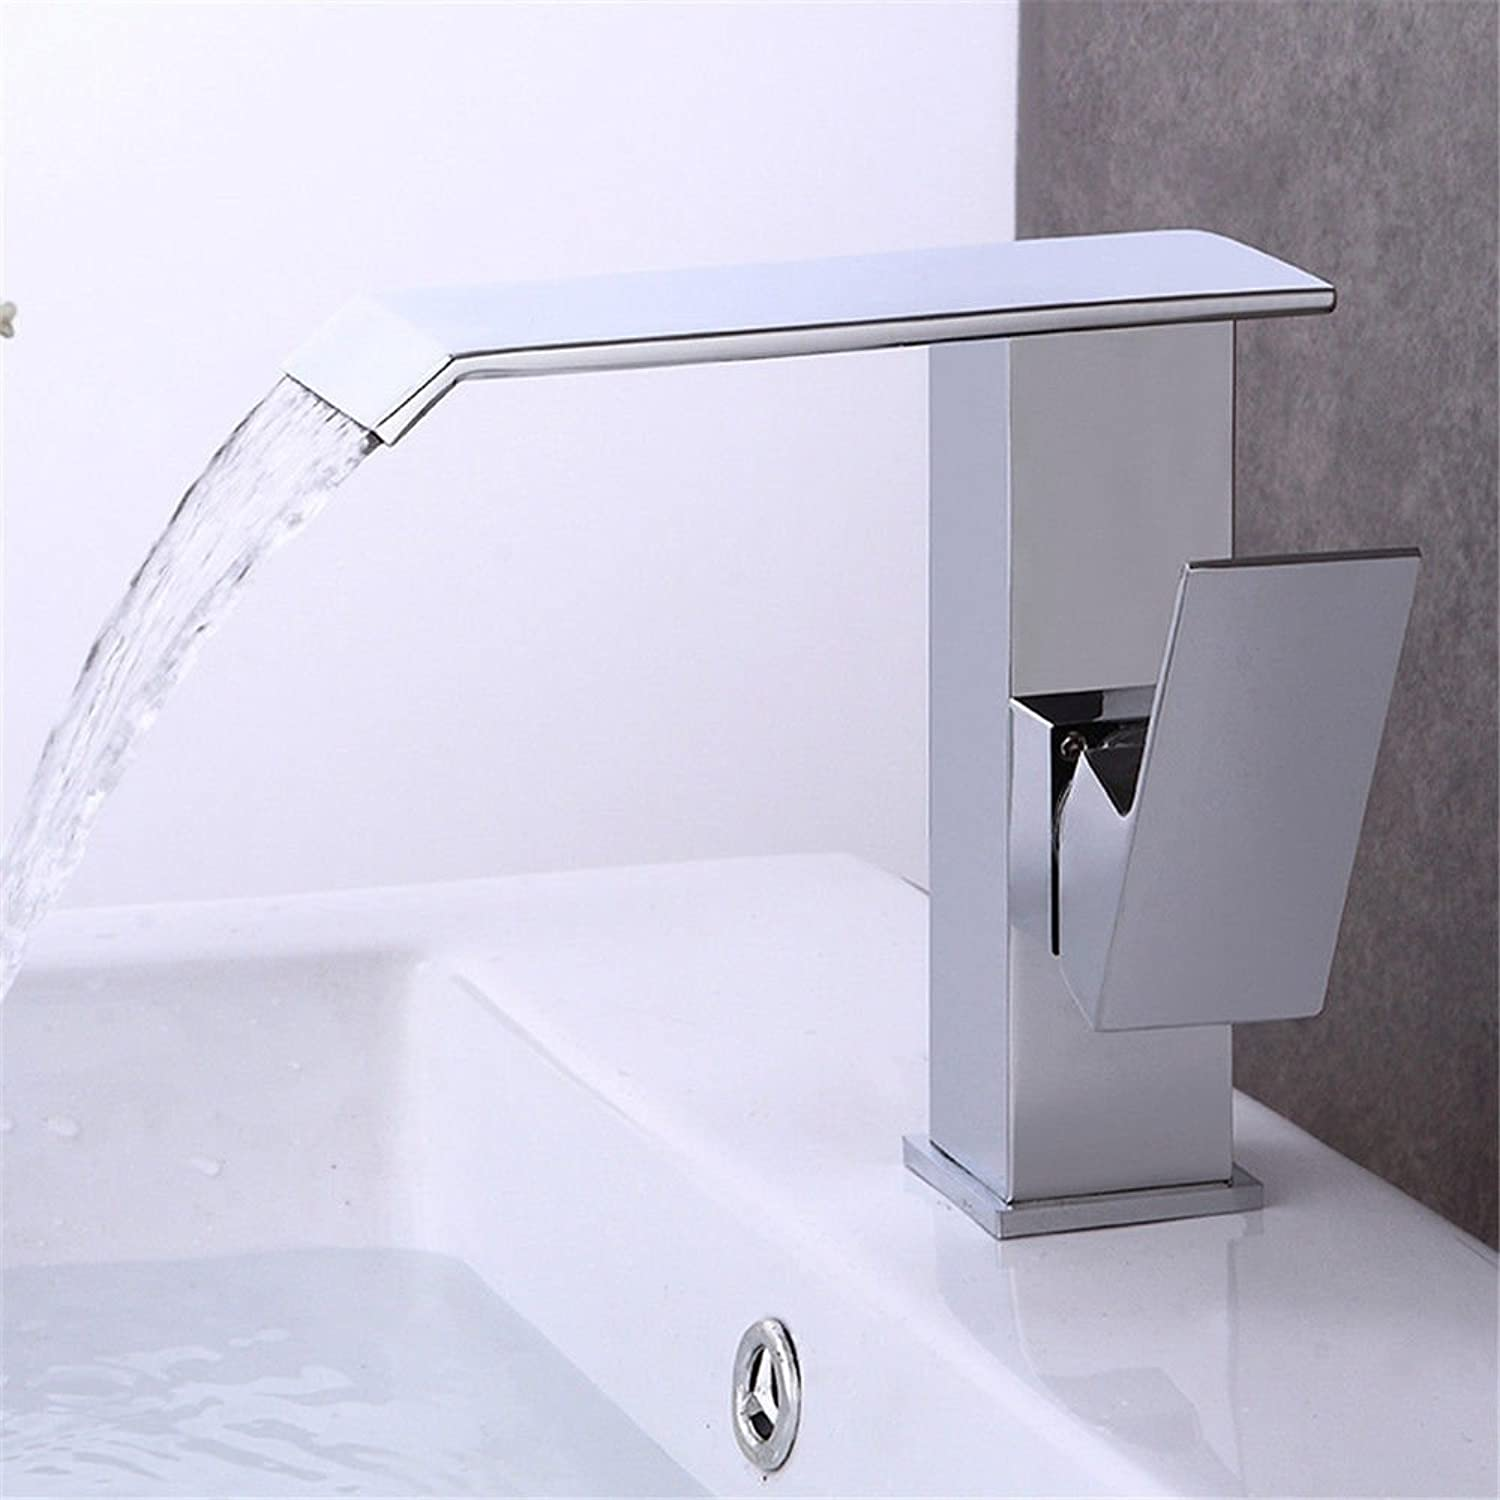 Good quality Antique Basin Sink Mixer Tap Retro-copper faucet hot and cold water basin mixer bathroom sink Faucet